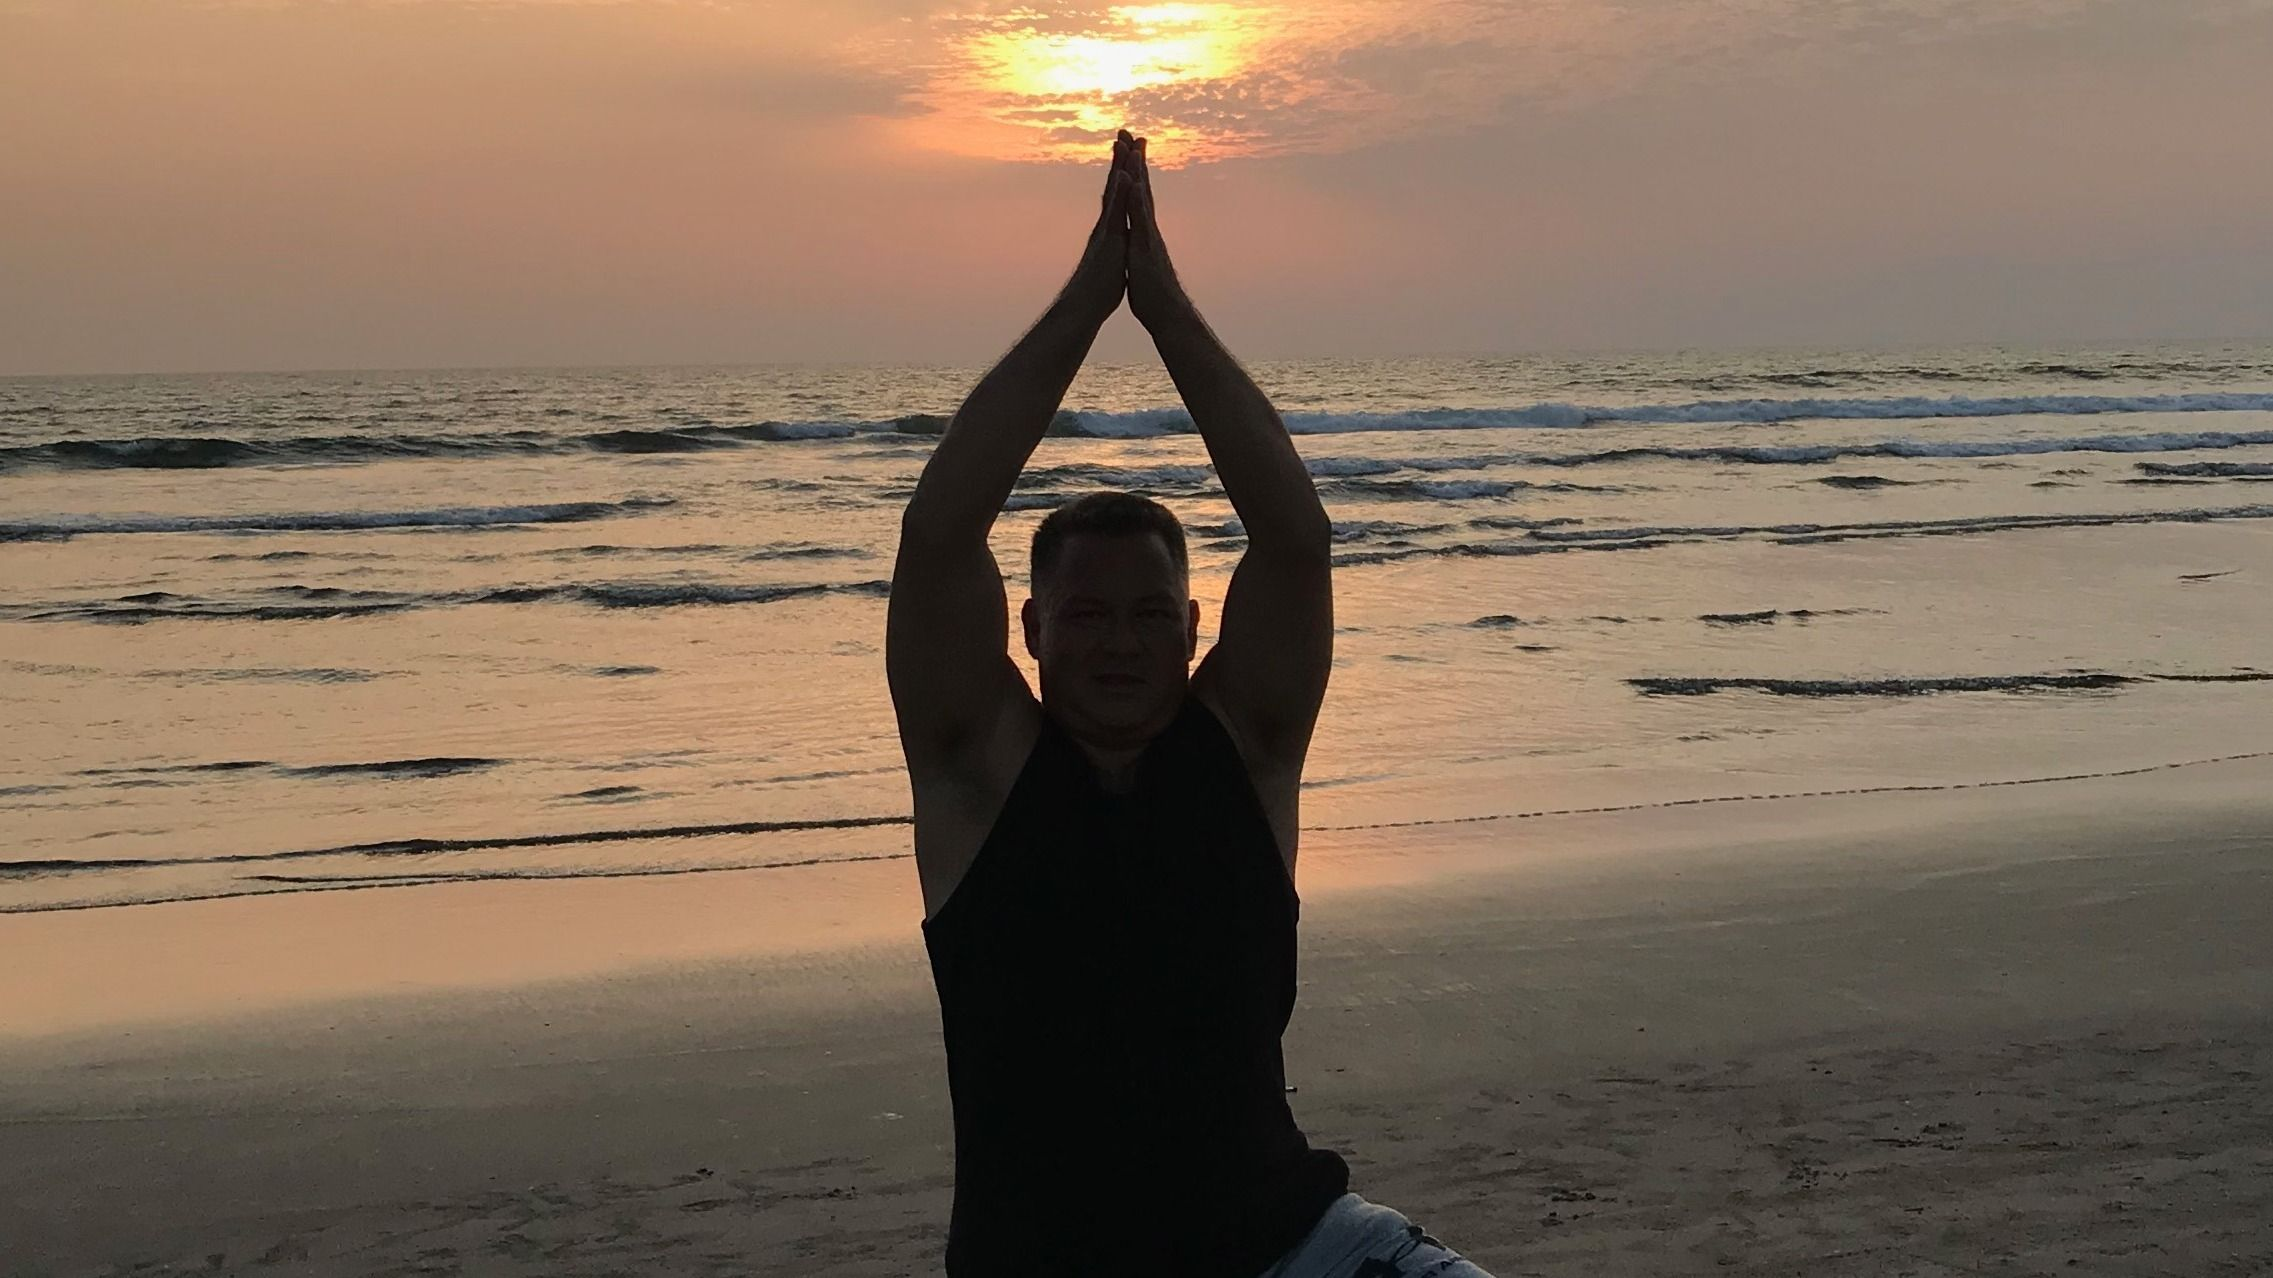 Morning Yoga For Small Business Leaders